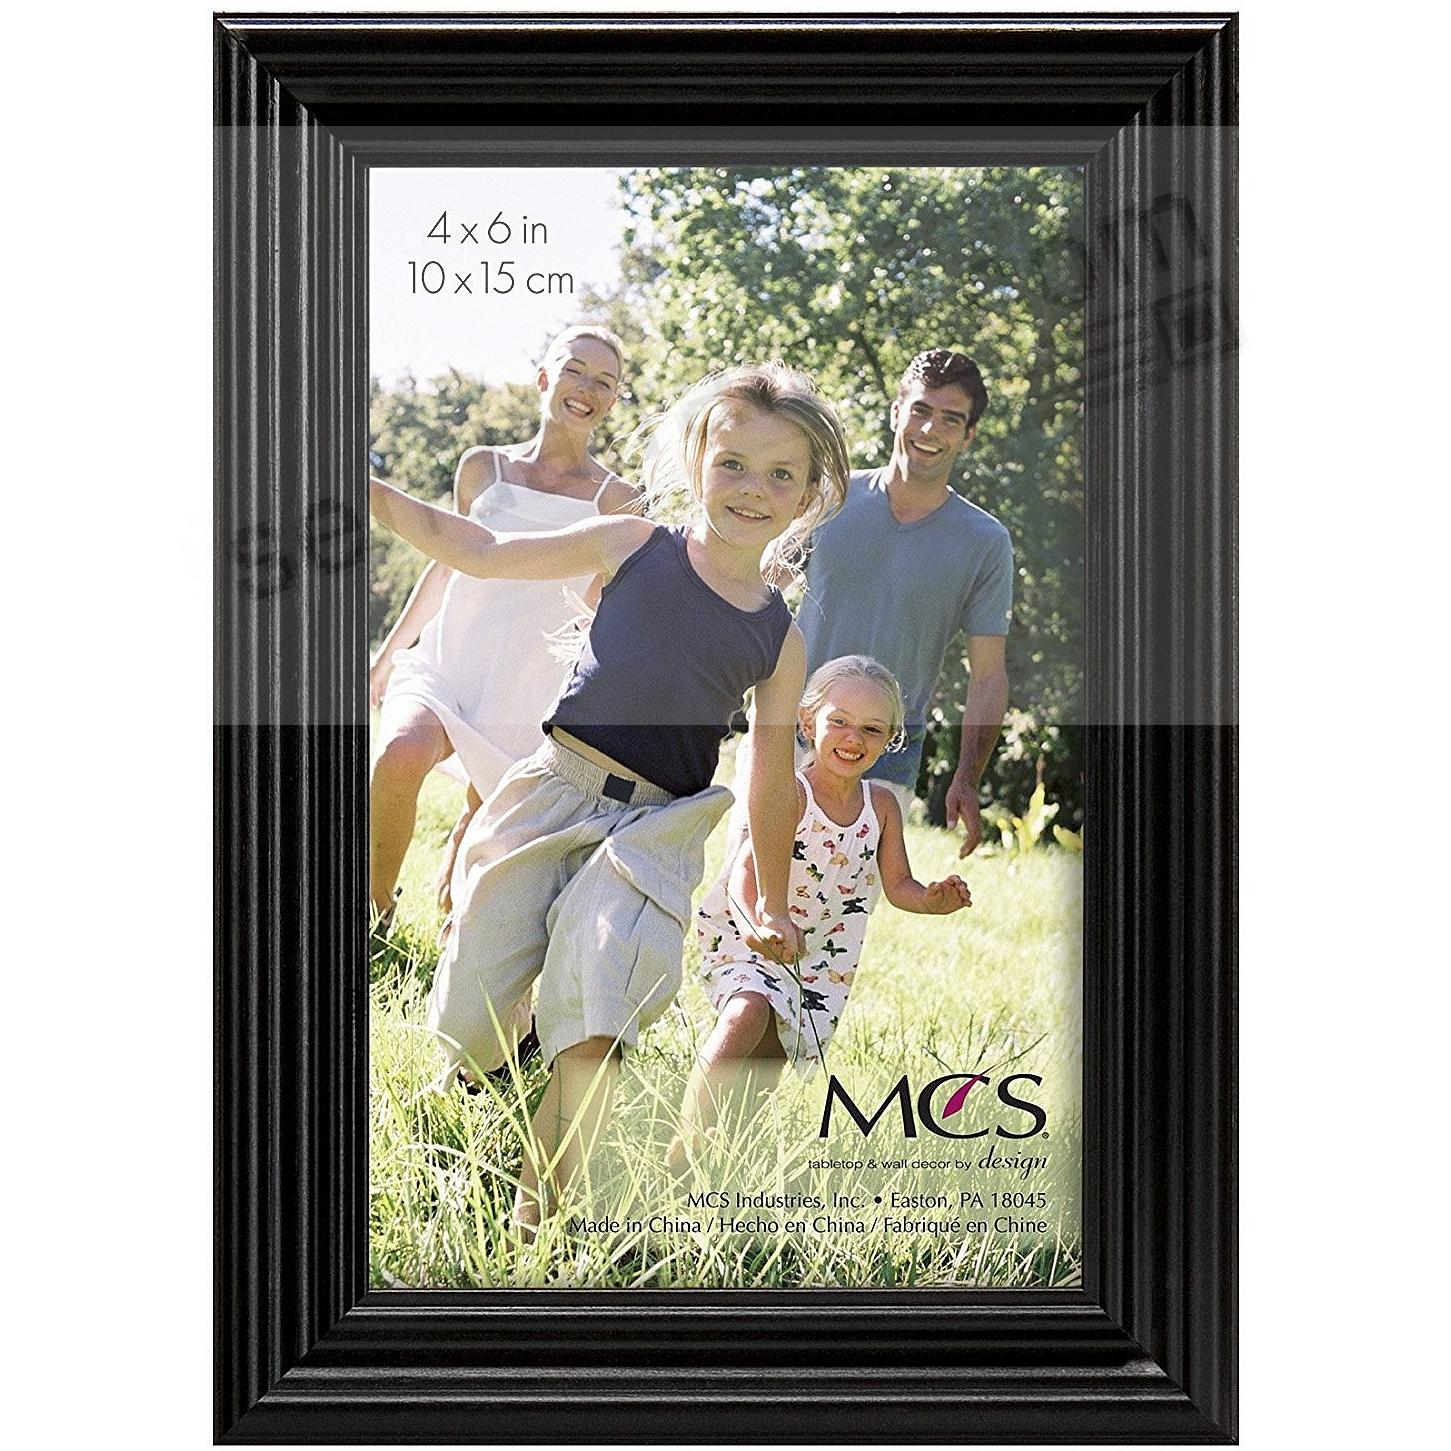 STYLE ONE Black Solid Wood 4x6 frame from MCS®